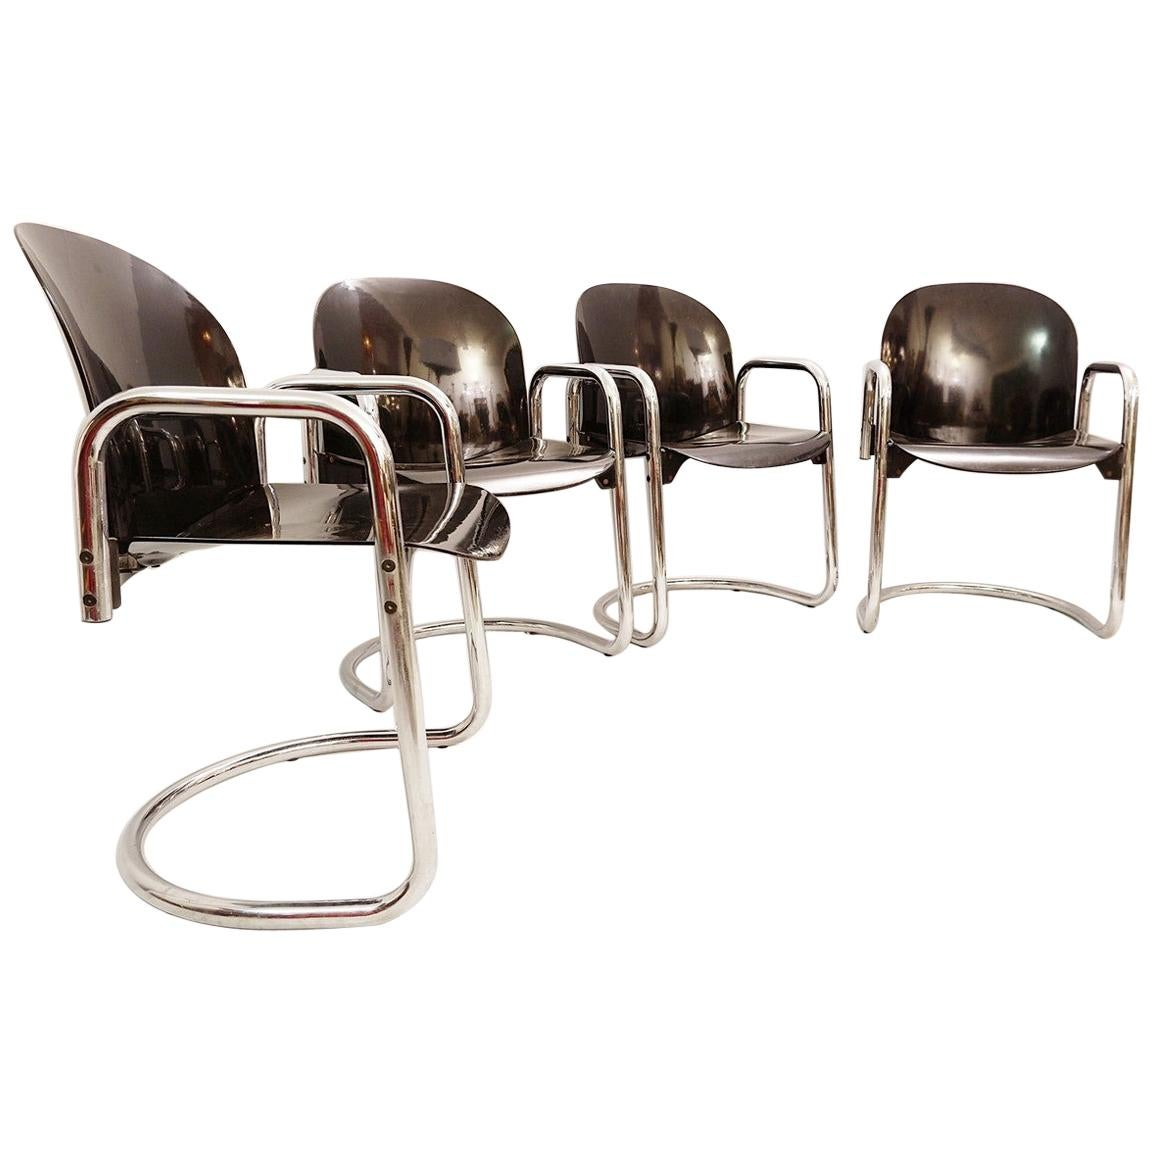 Set of 4 'Dialogo' Chromed Dining Chairs by Tobia Scarpa for B&B Italia, 1970s